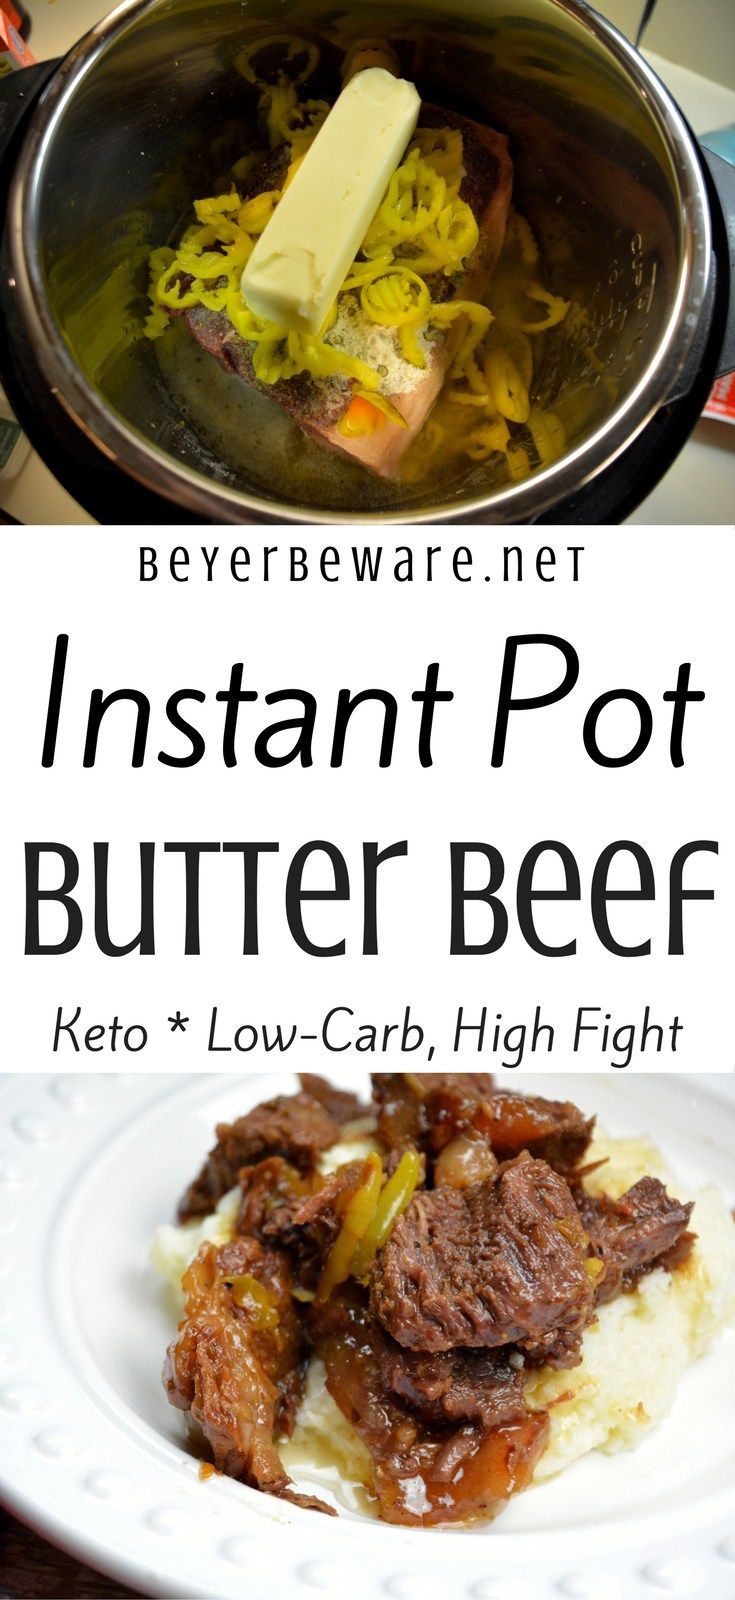 This Instant Pot Butter Beef Recipe Is Full Of Flavor Tender To Eat And Perfect As A Sandwich Or Ove Roast Beef Recipes Pressure Cooker Recipes Cooker Recipes